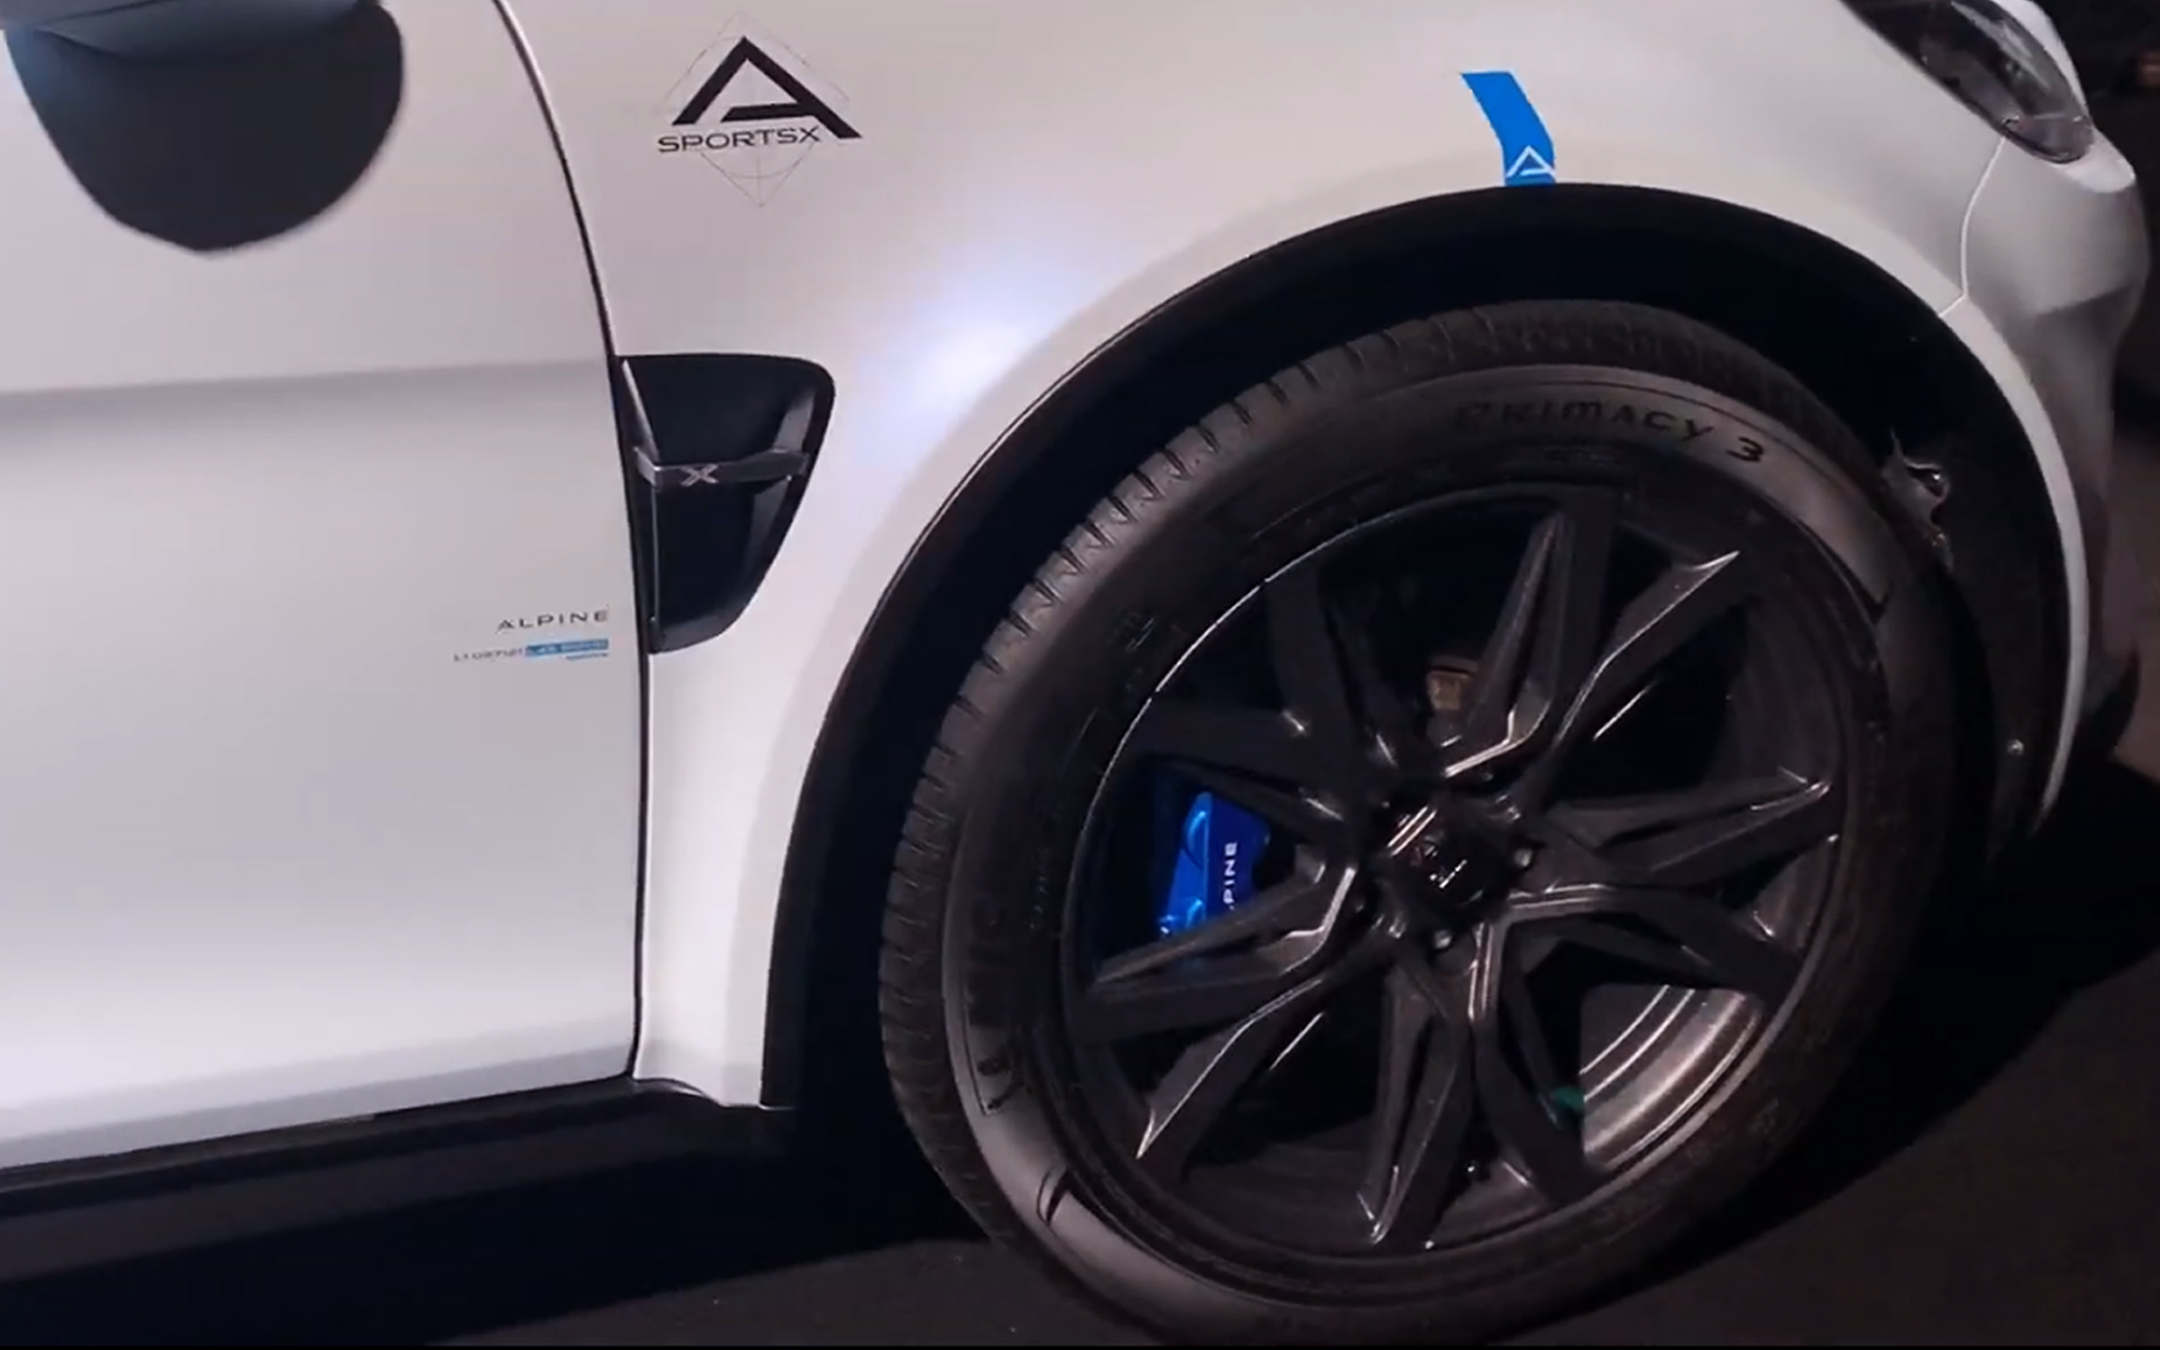 Alpine A110 Sports X - 2020 - front wheel / jante avant - tyre / pneu - Michelin Primacy 3 - preview - showcar - photo screen video - FAI2020